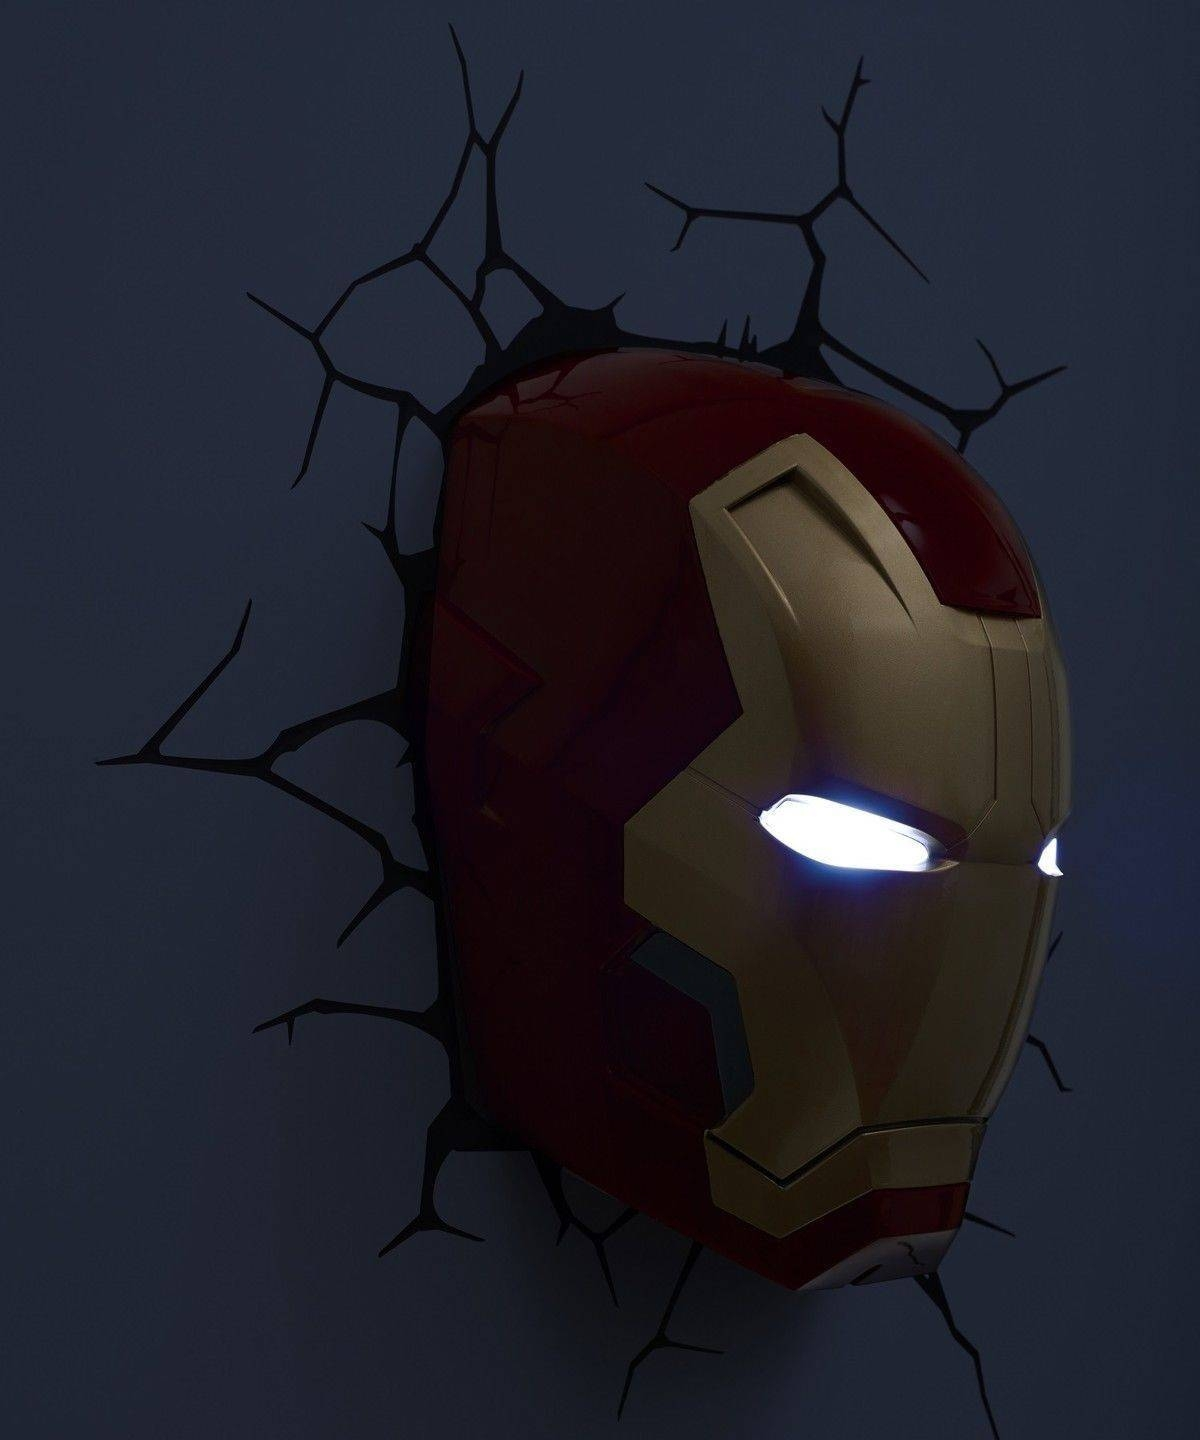 Iron Man Marvel Childrens Kid Bedroom 3D Deco Phillips Wall Night Within Most Up To Date 3D Wall Art Iron Man Night Light (View 12 of 20)